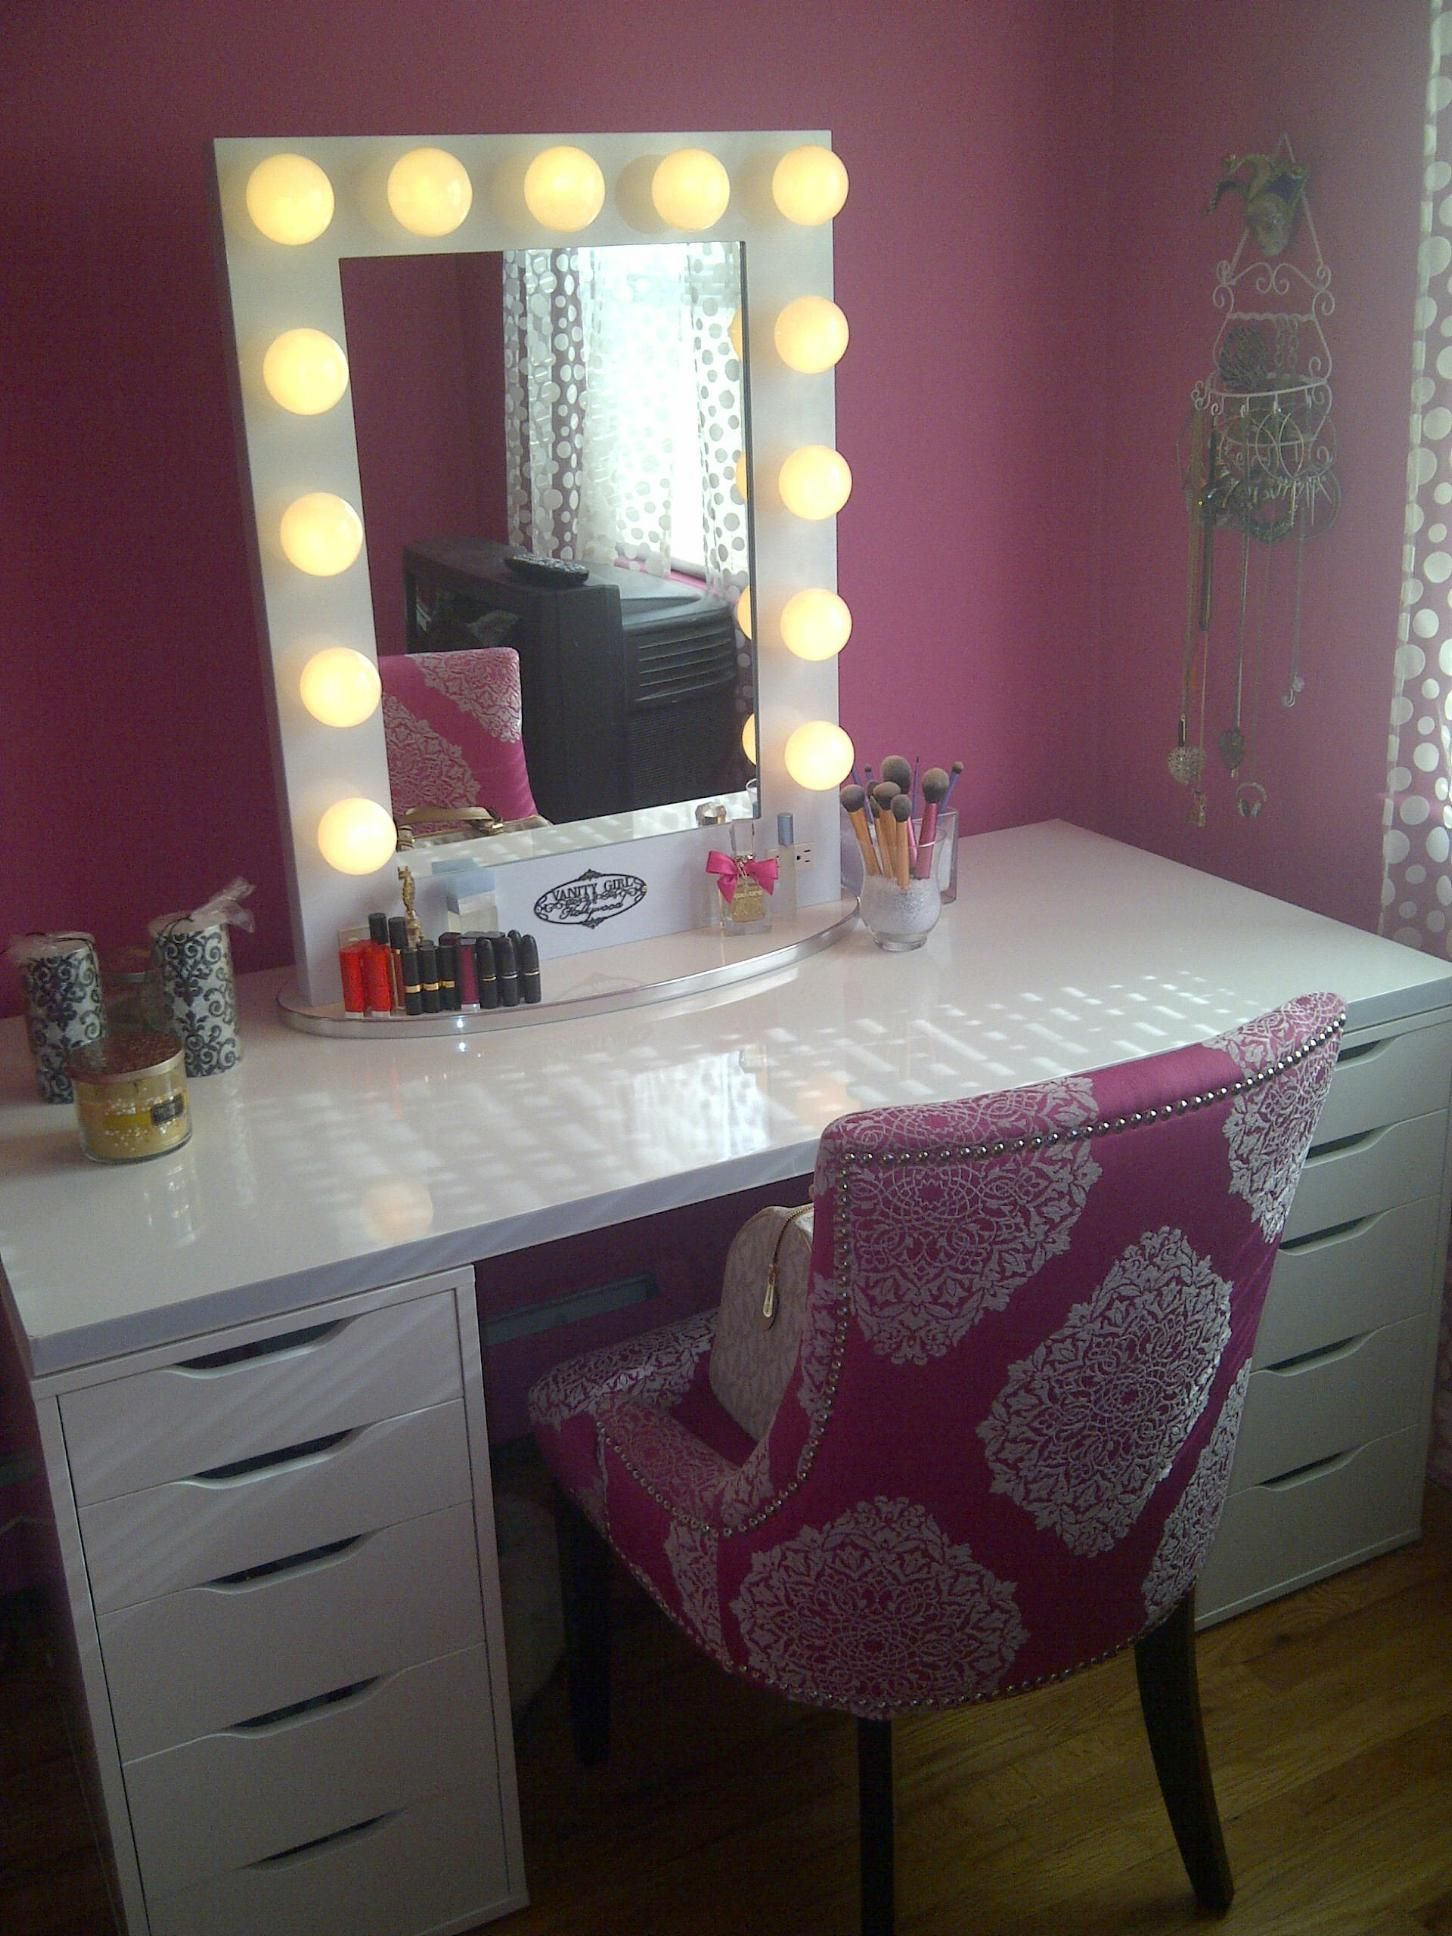 13 beautiful makeup room ideas organizer and decorating makeup rh pinterest com